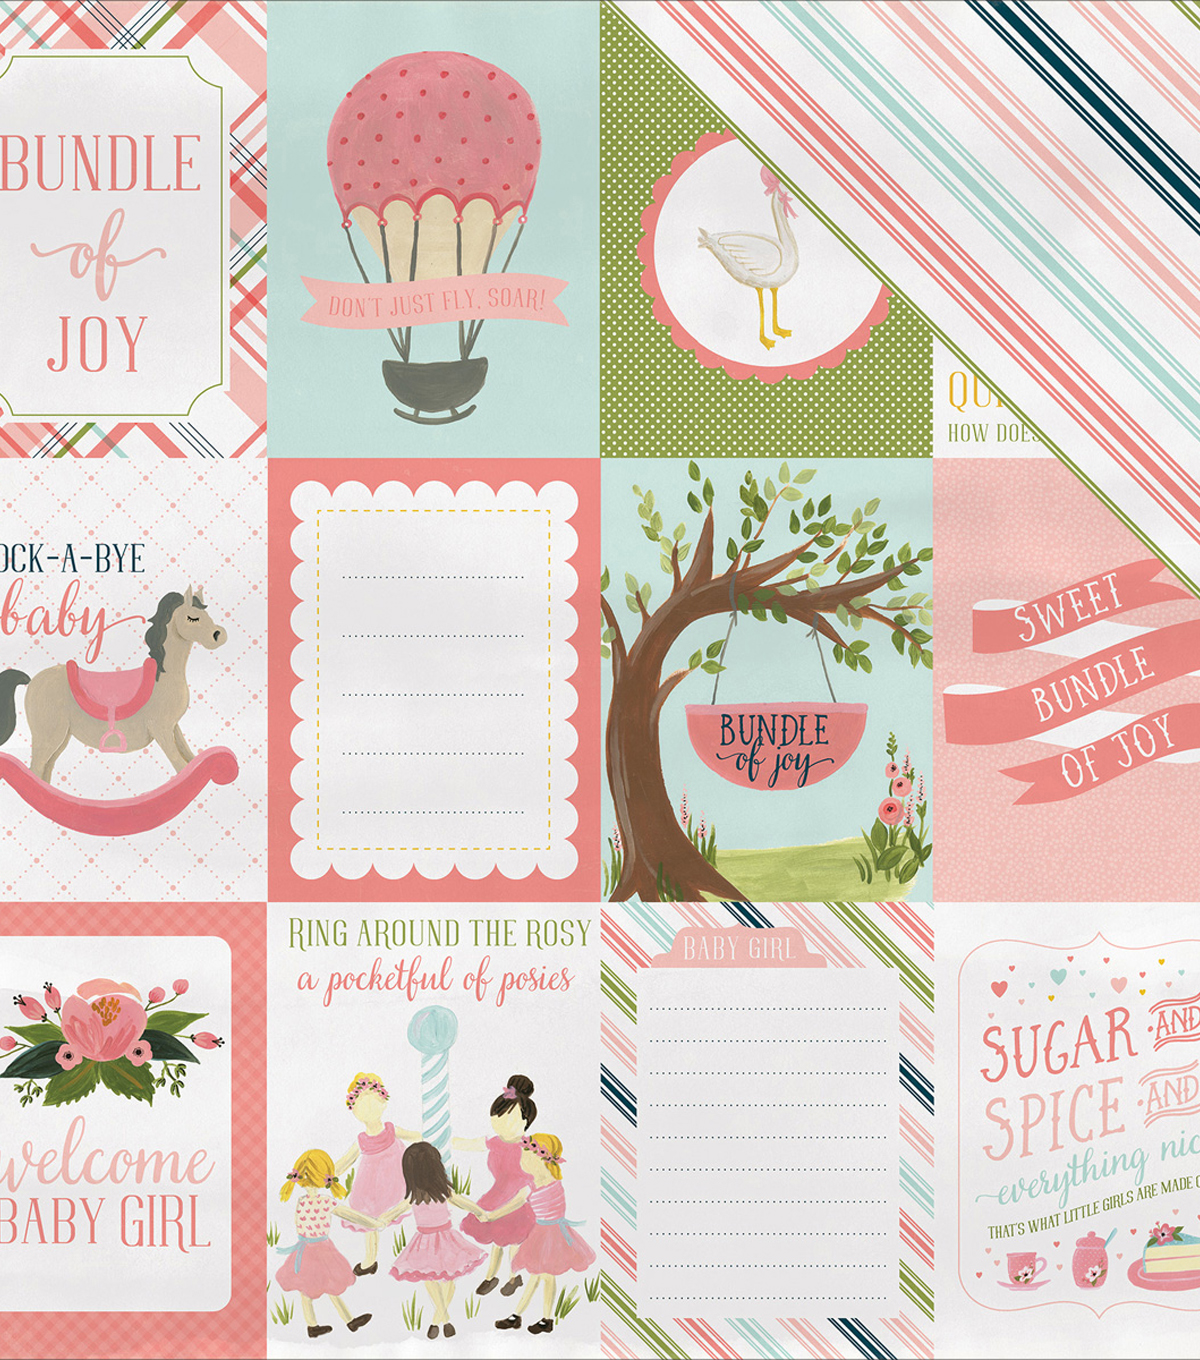 Rock-A-Bye Baby Girl Double-Sided Cardstock 12\u0022X12\u0022-Journaling Cards